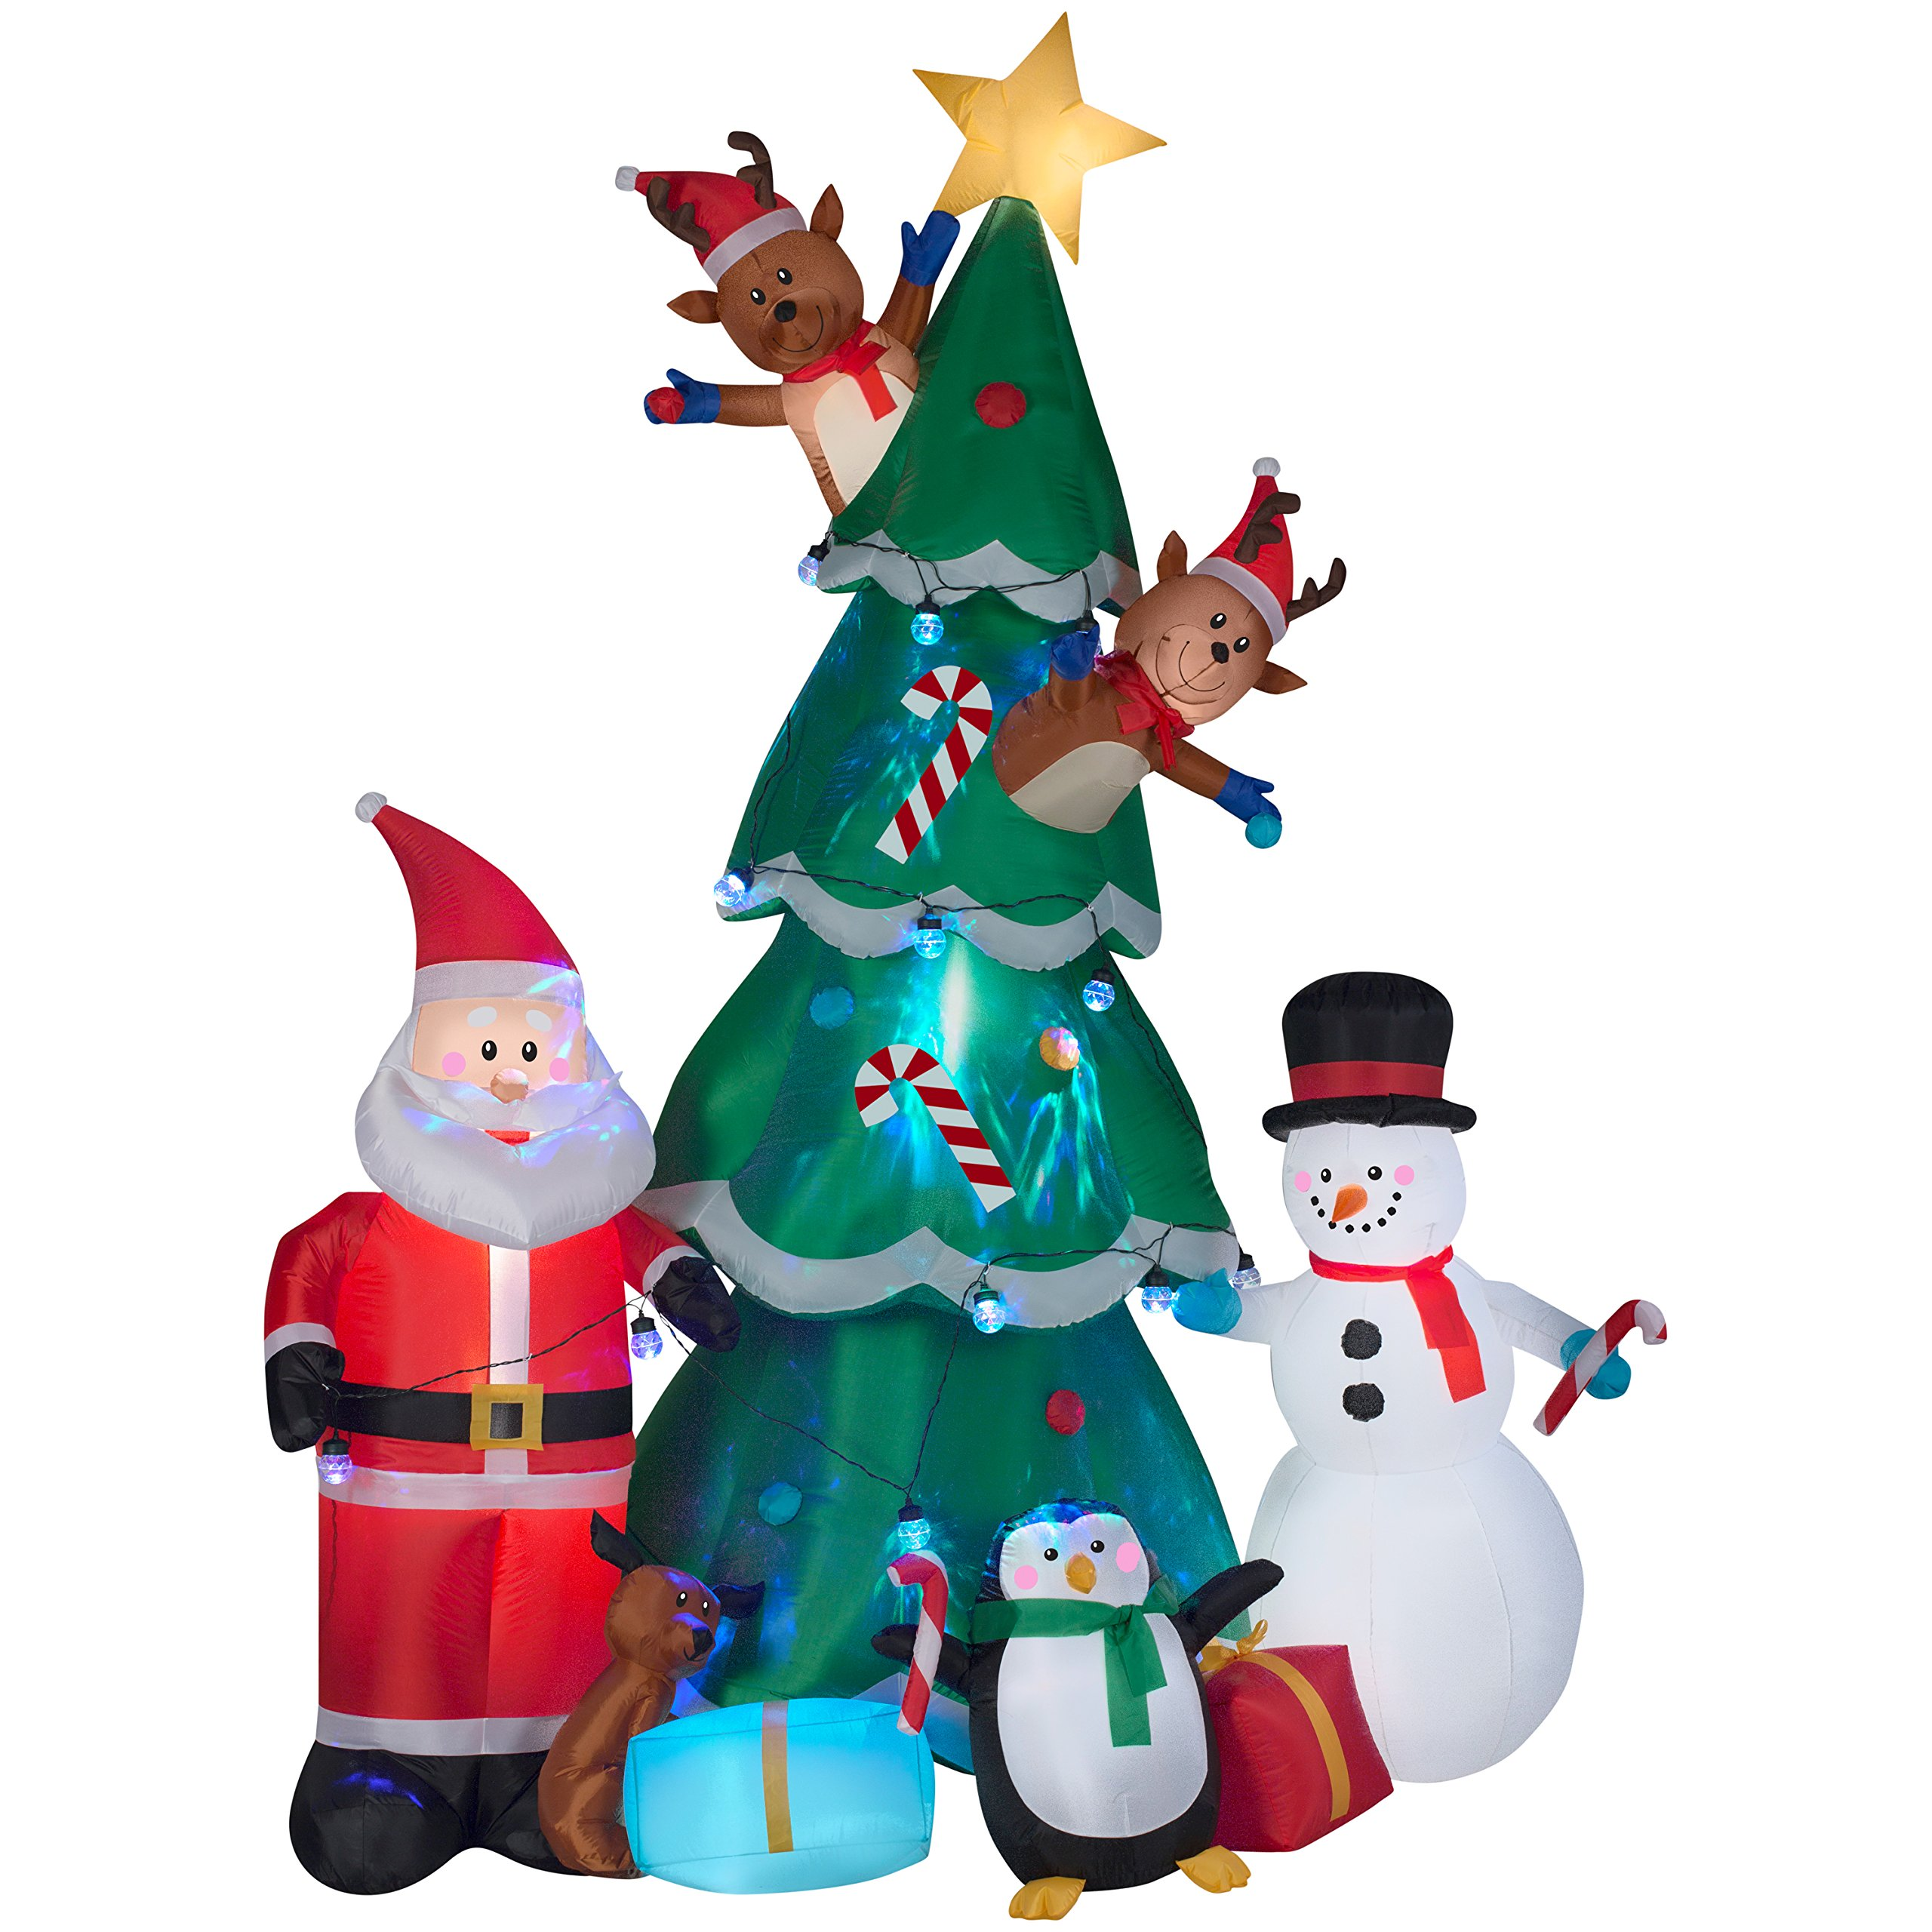 Gemmy Animated Christmas Tree with Santa, Reindeer and Snowman Indoor/Outdoor Holiday Display